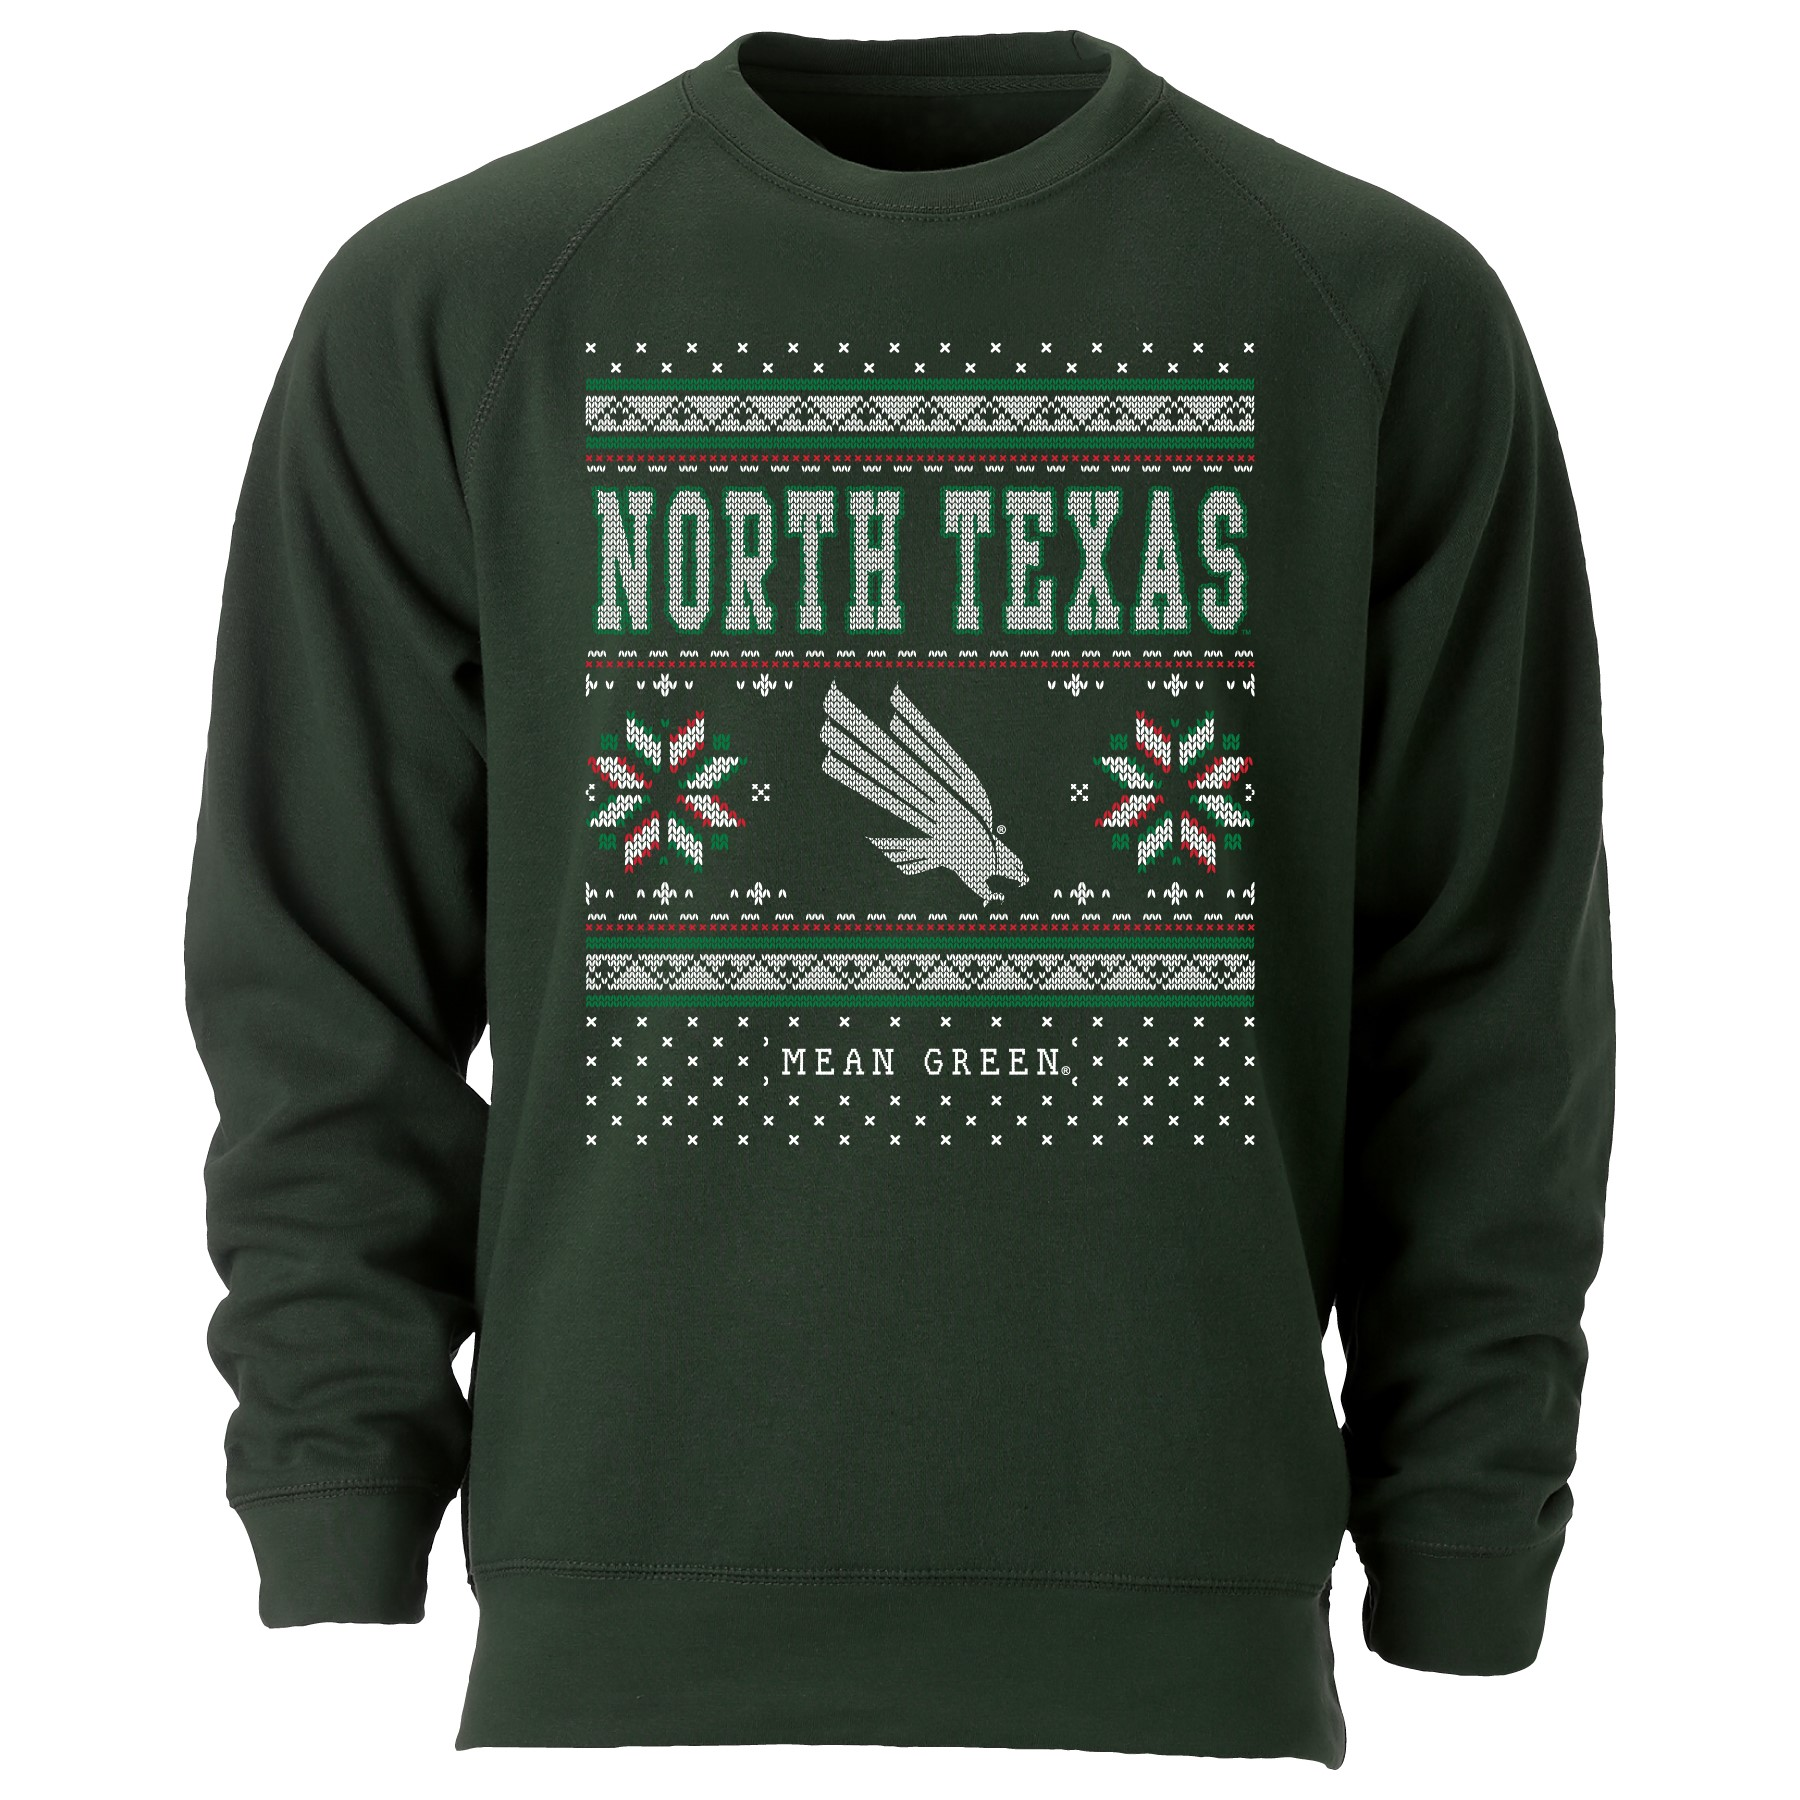 2018 HOLIDAY SWEATER